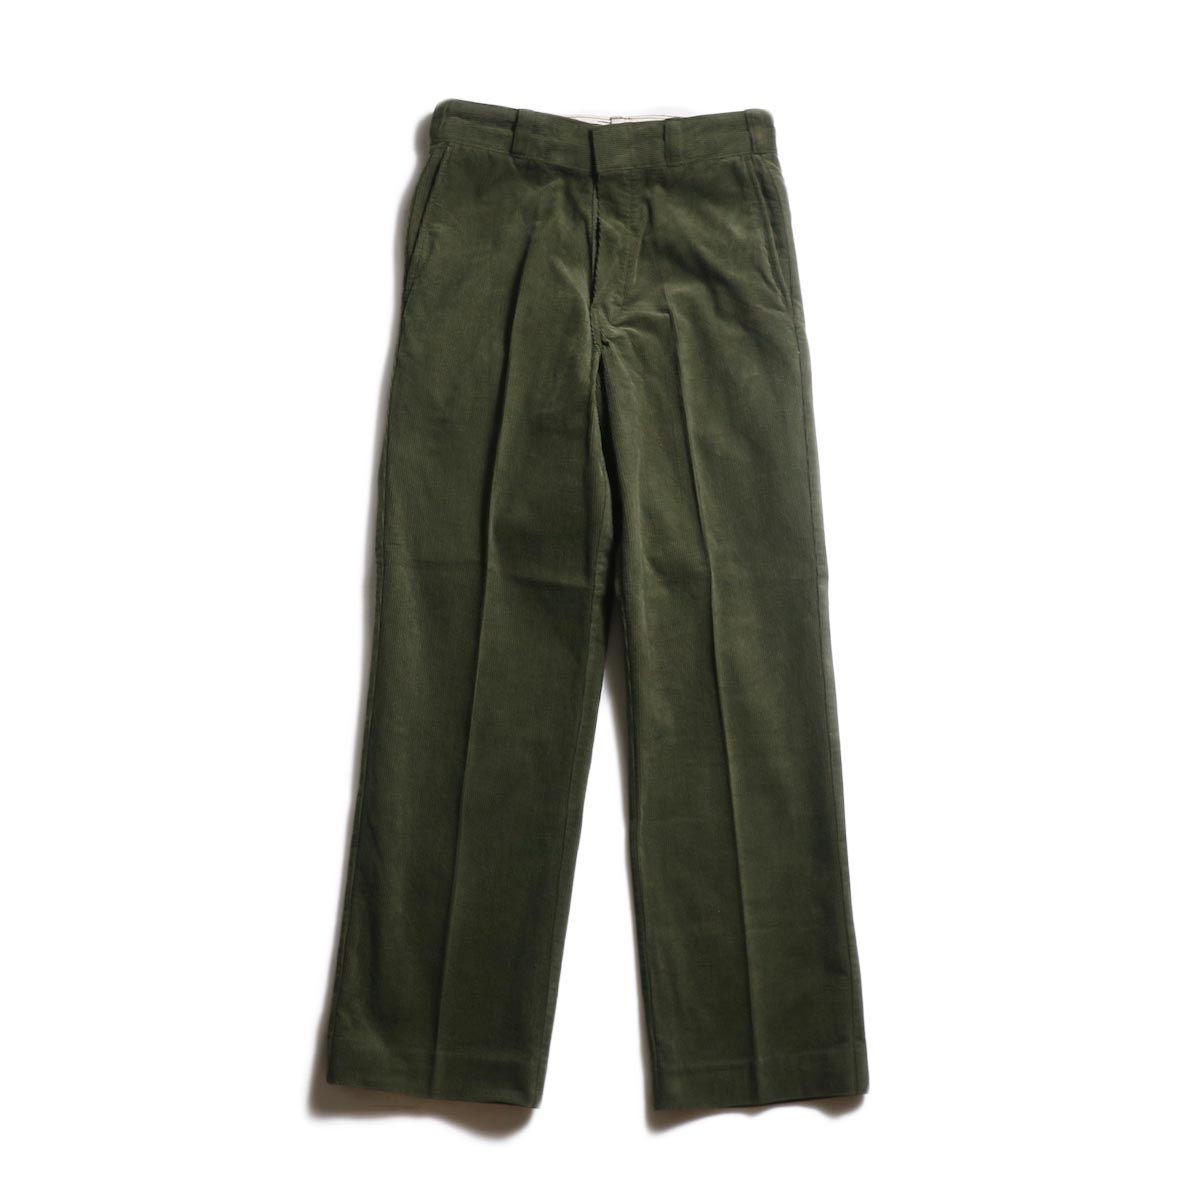 UNUSED × Dickies / UW0774 corduroy pant -Olive